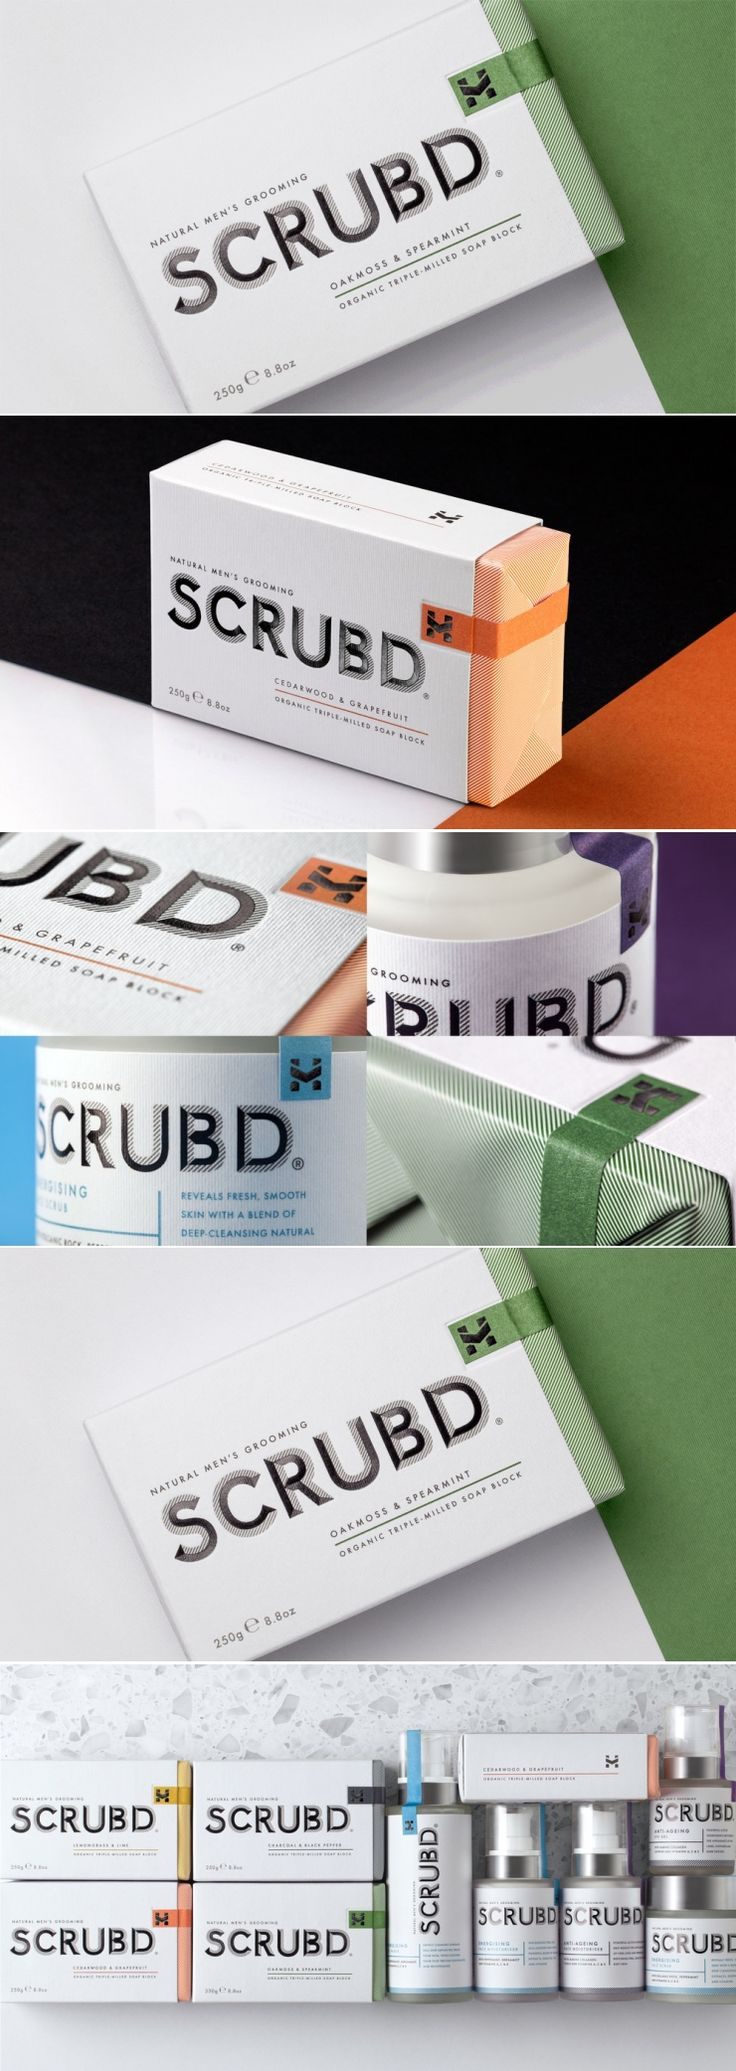 New Identity for SCRUBD Allows Men to Make Their Mark — The Dieline | Packaging & Branding Design & Innovation News